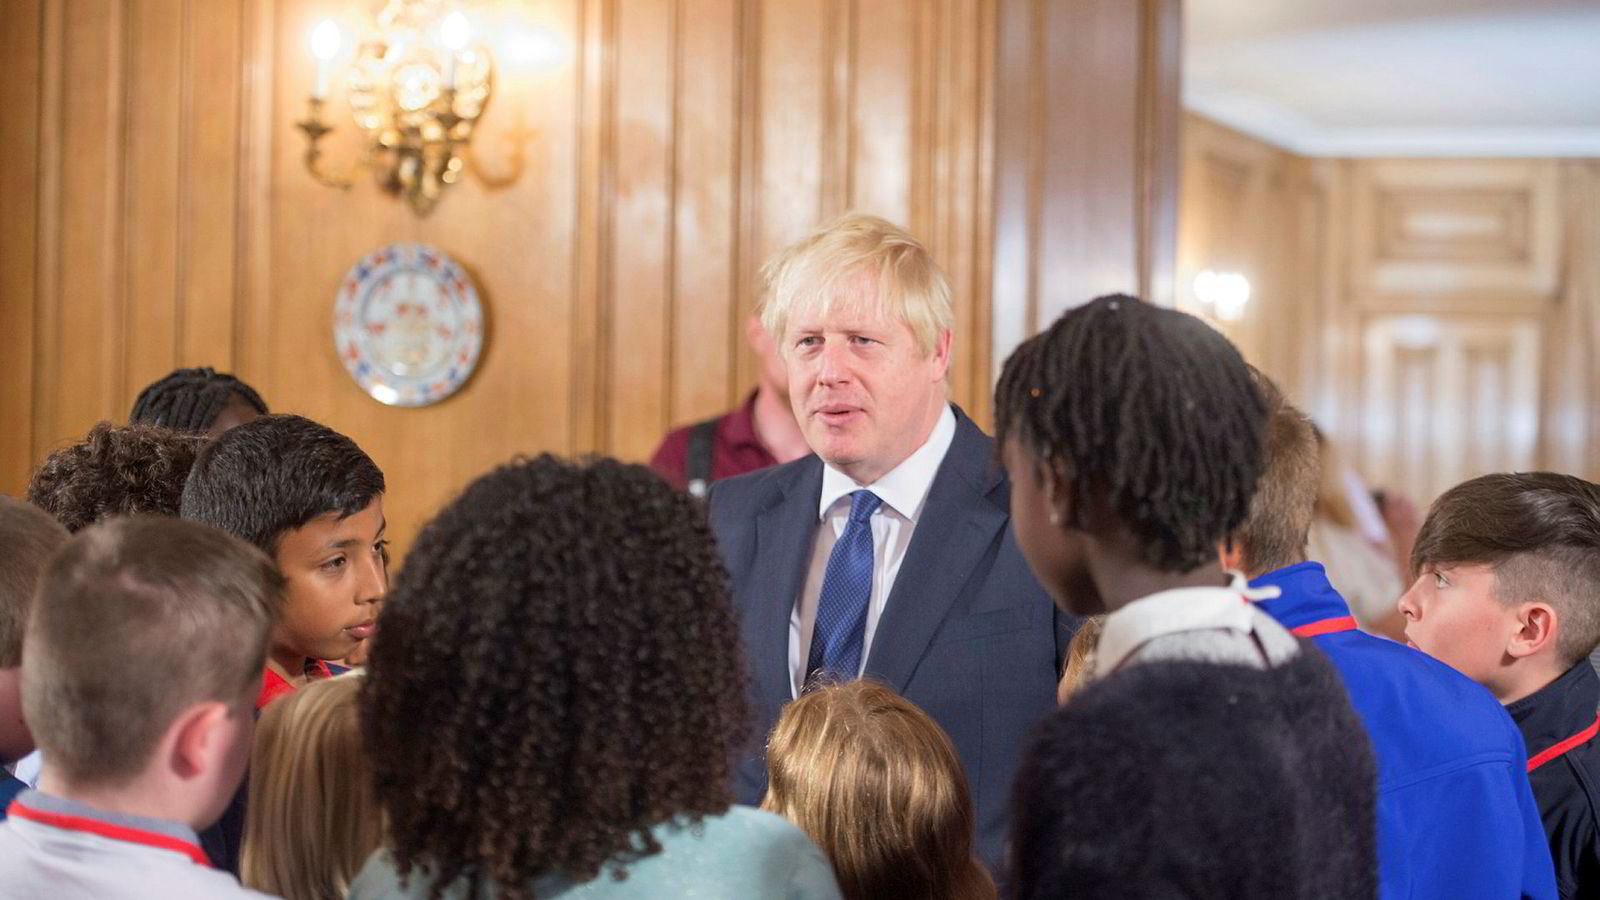 British Prime Minister Boris Johnson takes questions from children aged 9-14 during an education announcement inside Downing Street in London, Britain, August 30, 2019. Jeremy Selwyn/Pool via REUTERS